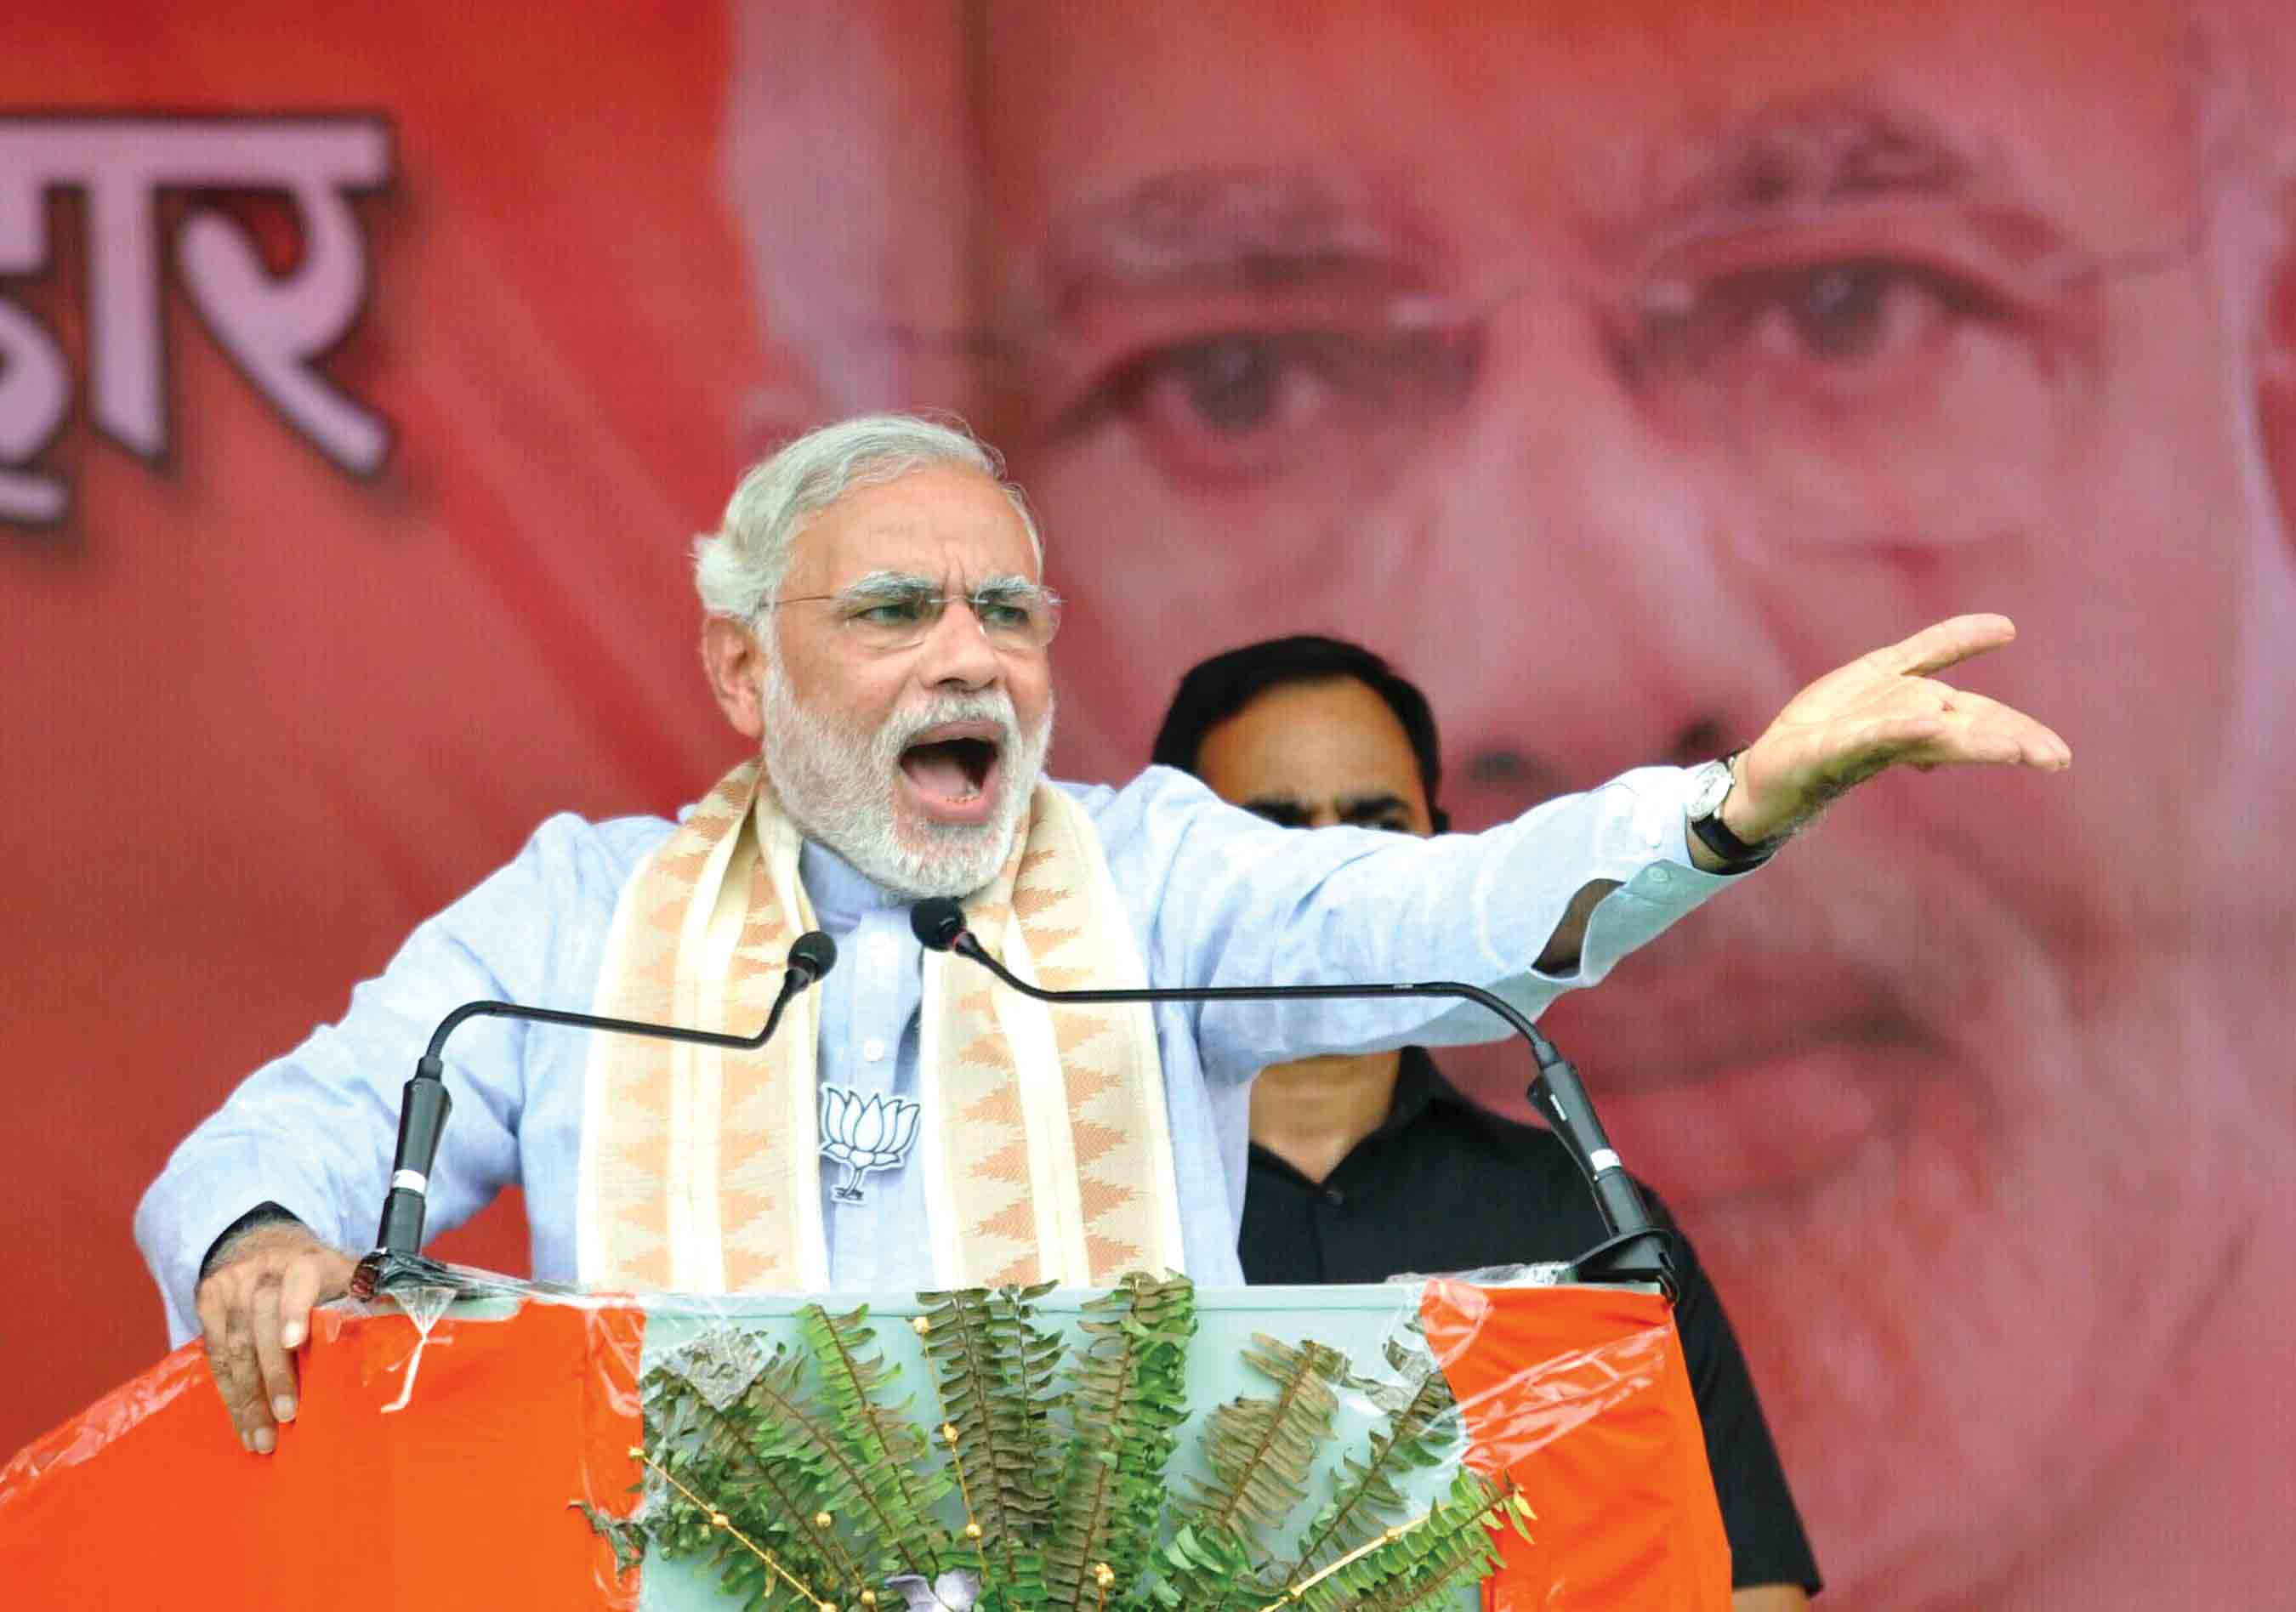 GAYA, AUG 9 (UNI):- Prime Minister Narendra Modi addressing Parivertan Rally in Gaya on Sunday. UNI PHOTO-51U